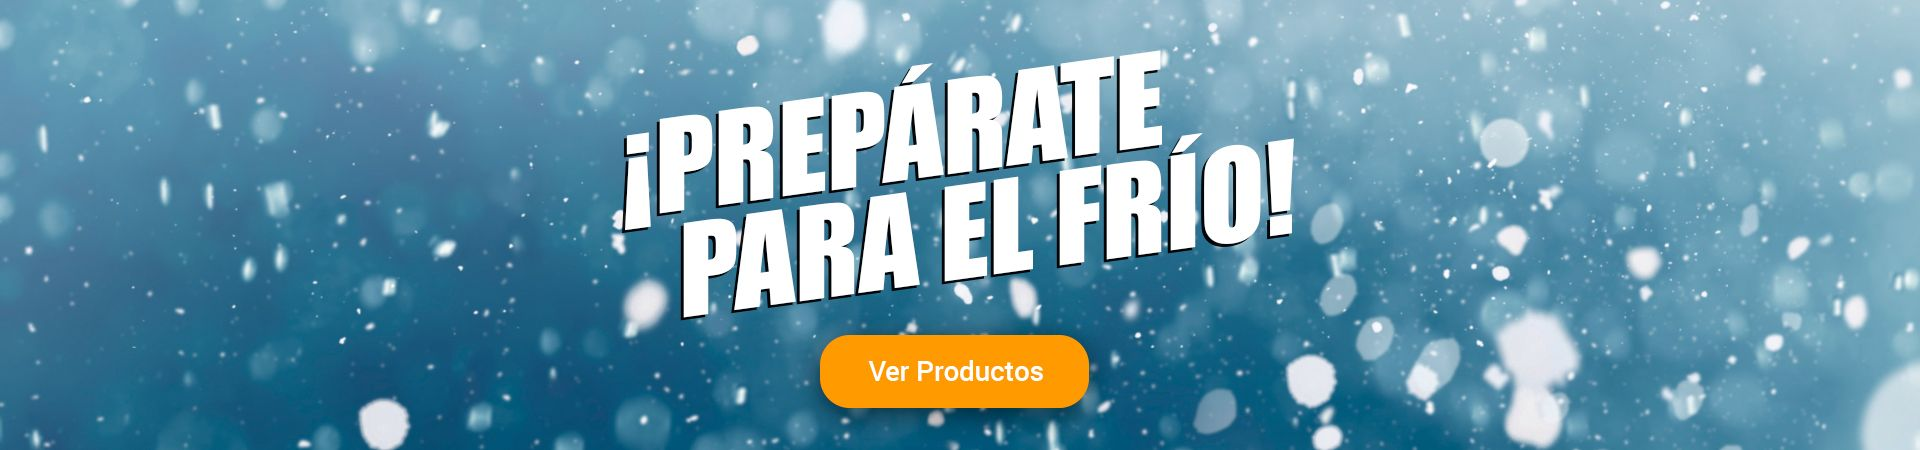 Preparate-para-el-frio-_-Banner-Slider-Web-1-